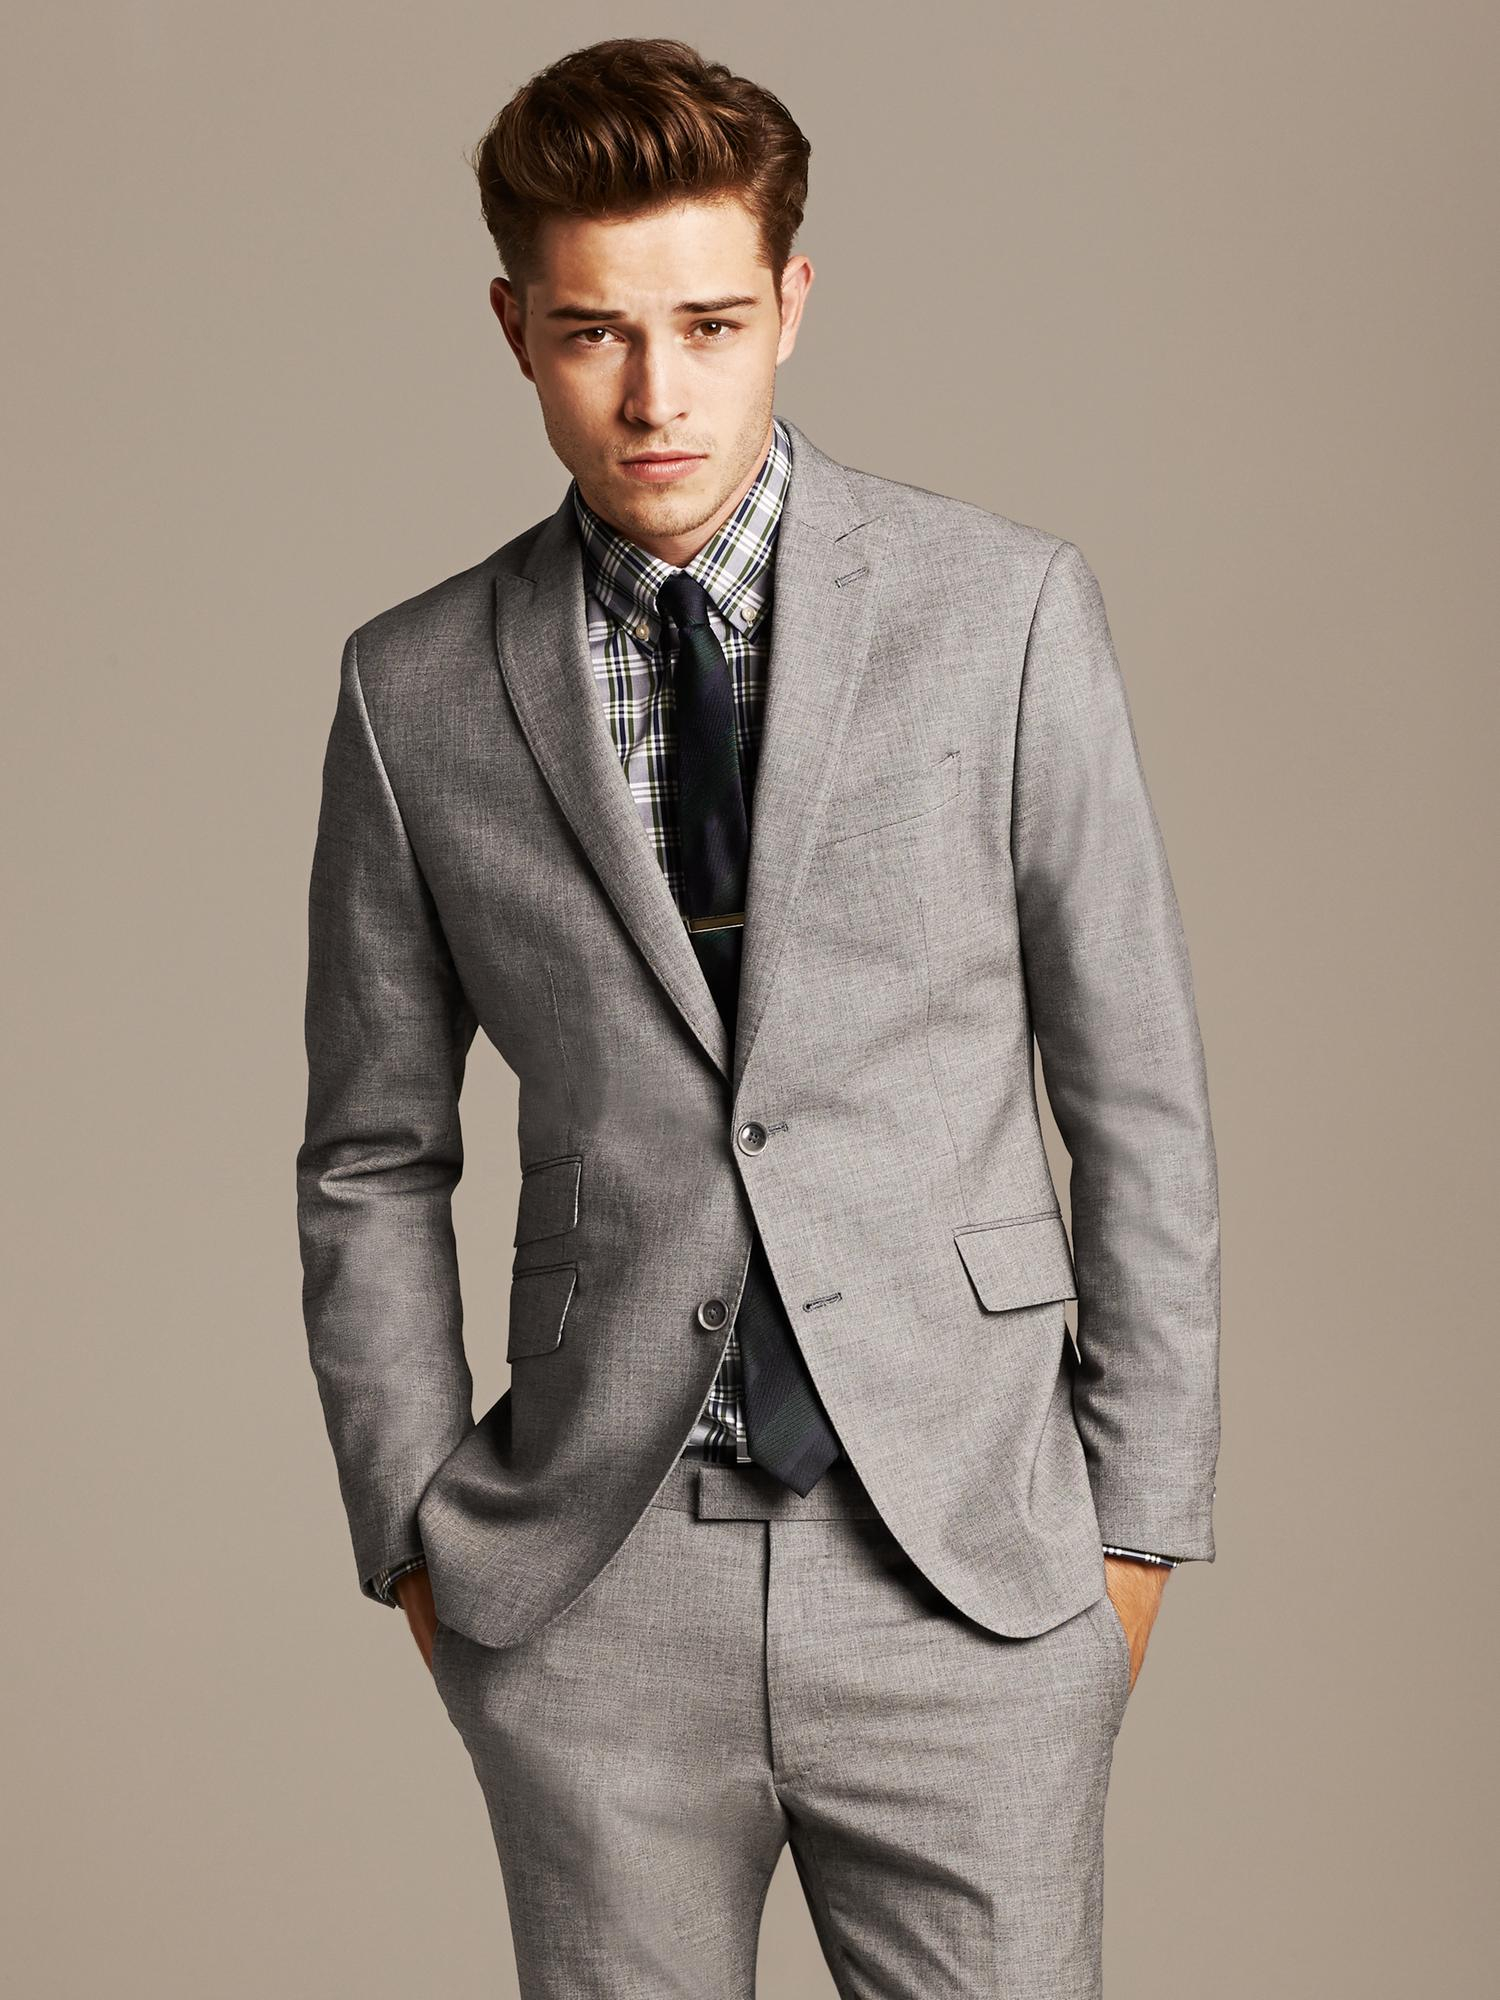 Modern Fit Men's Suits at Macy's come in all styles and sizes. Shop Modern Fit Men's Suits and get free shipping w/minimum purchase! Macy's Presents: The Edit- A curated mix of fashion and inspiration Check It Out. Andrew Marc Men's Modern-Fit Gray Neat Solid Suit.